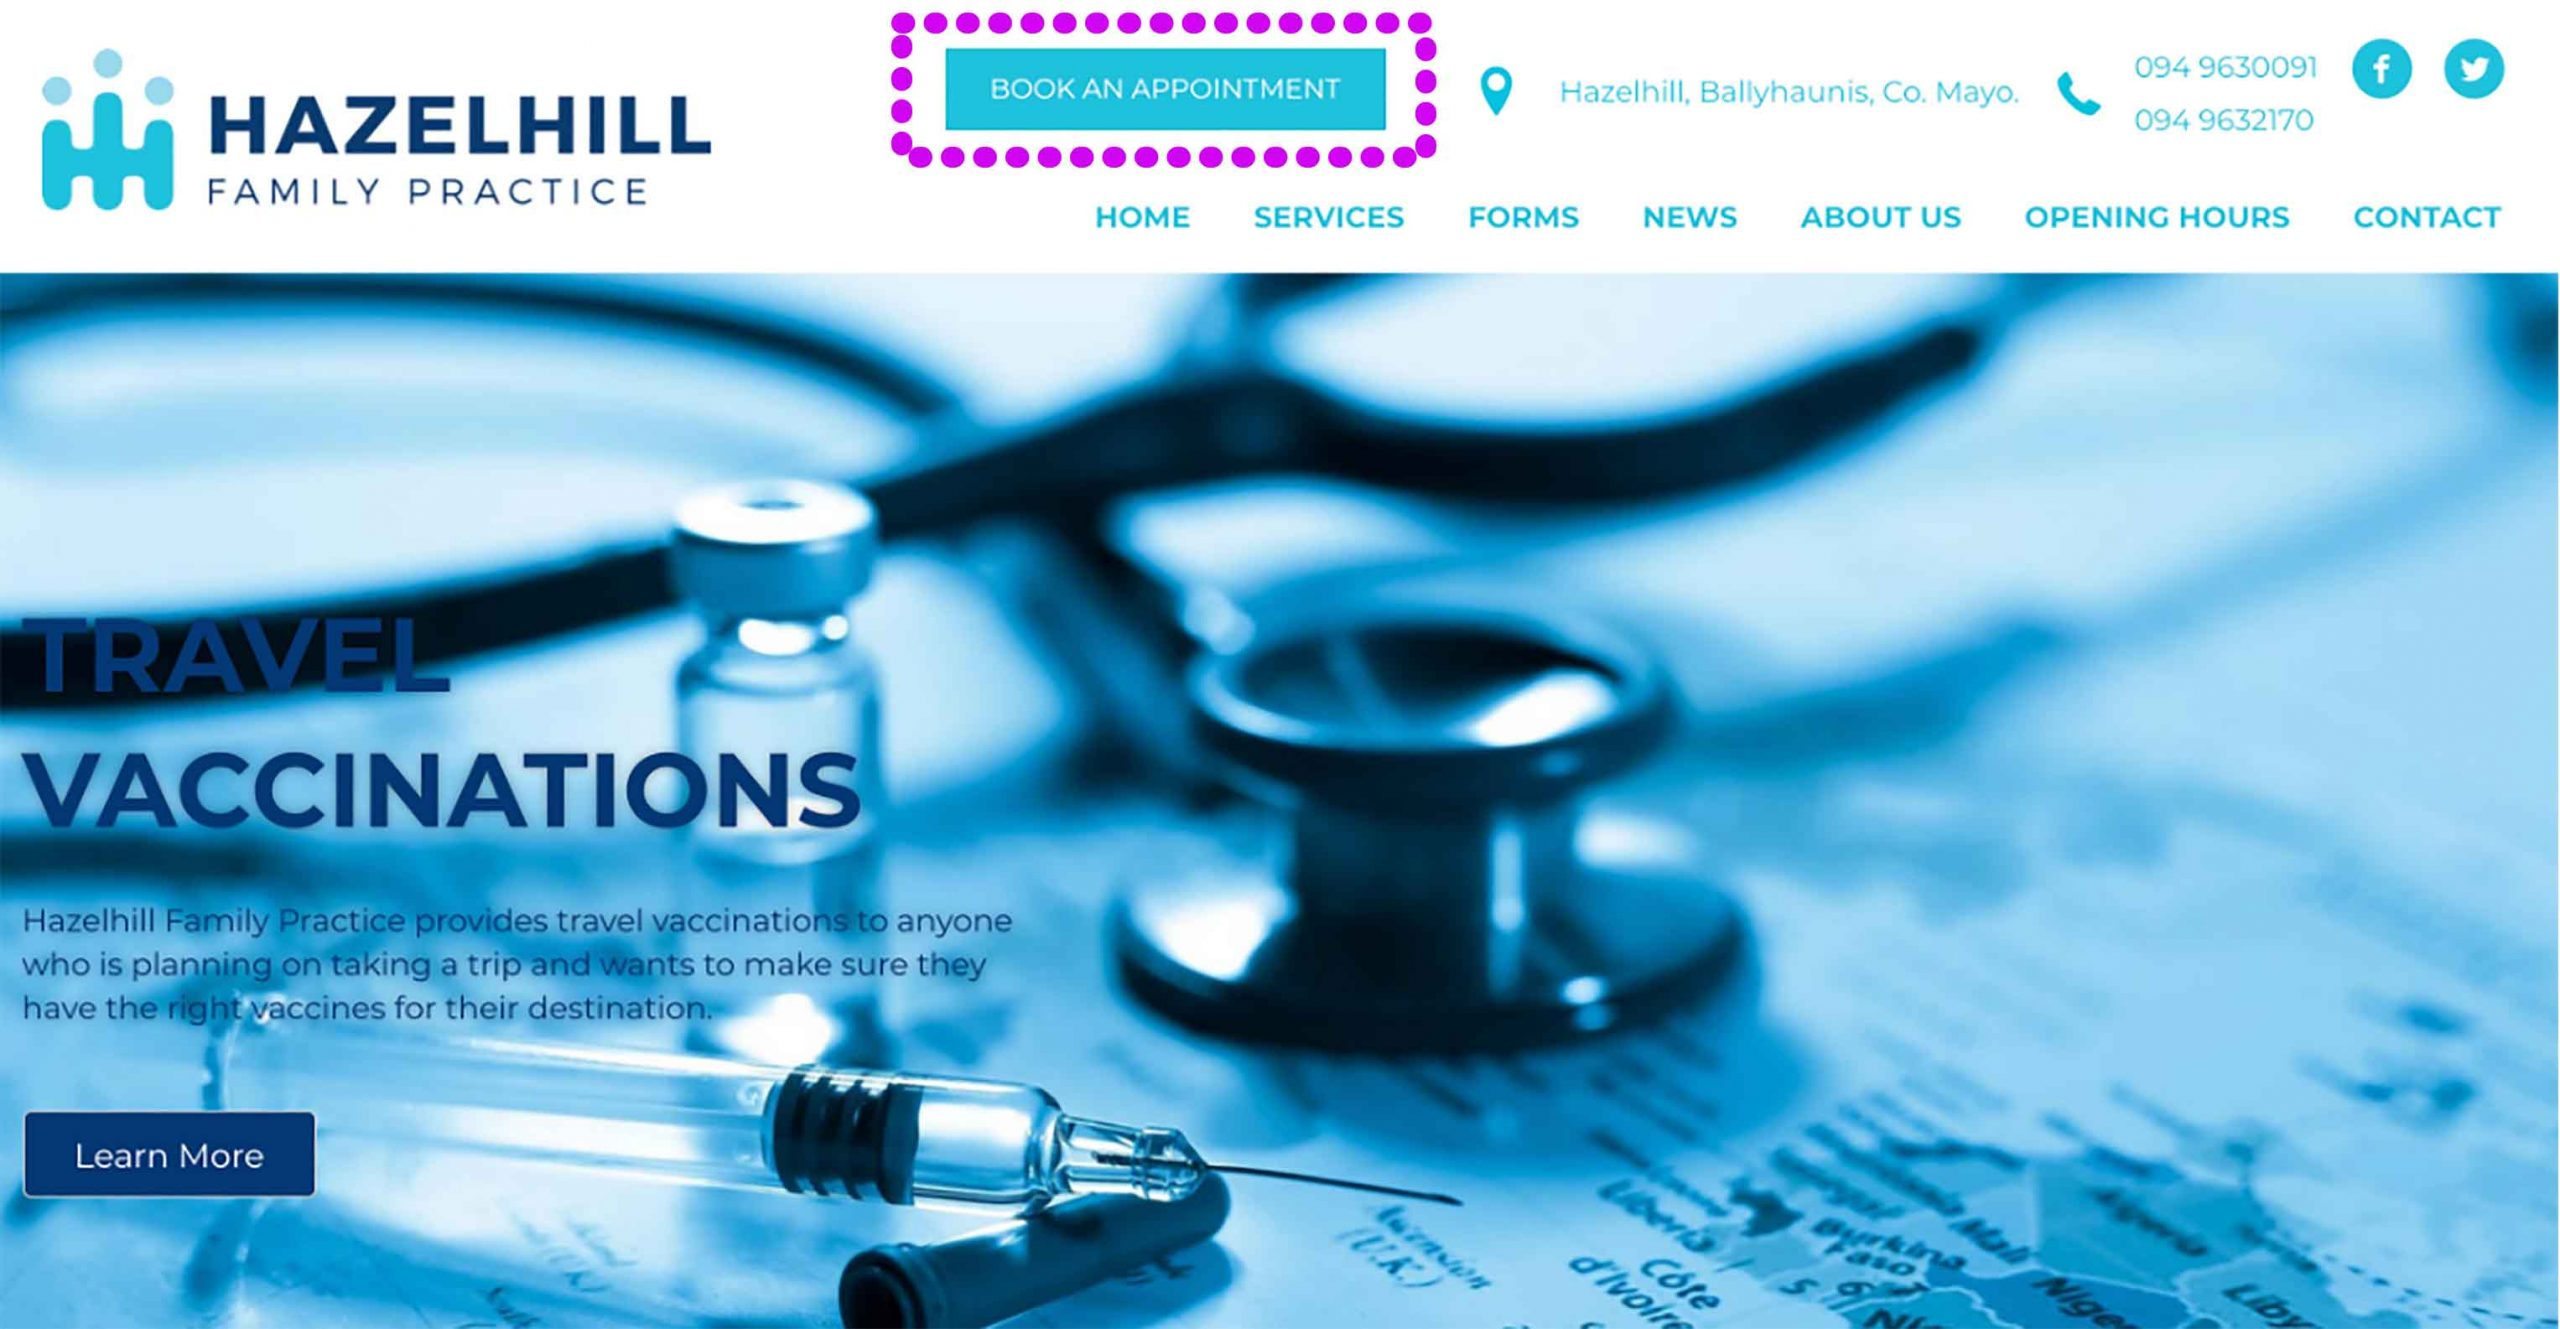 Booking an appointment with Hazelhill Family Practice